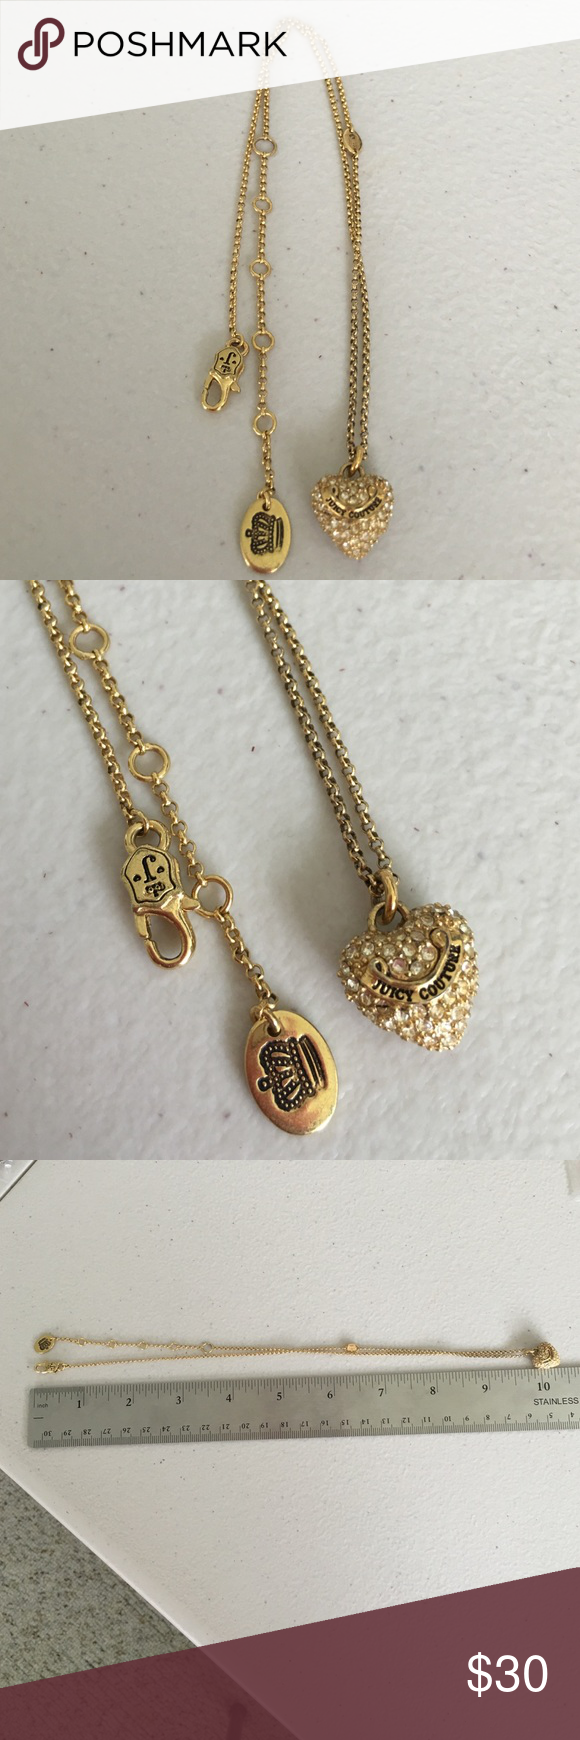 ❥ Juicy Couture Heart Necklace Used Juicy Couture heart necklace. Take a look at the pictures and let me know if you want to get more. Juicy Couture Accessories